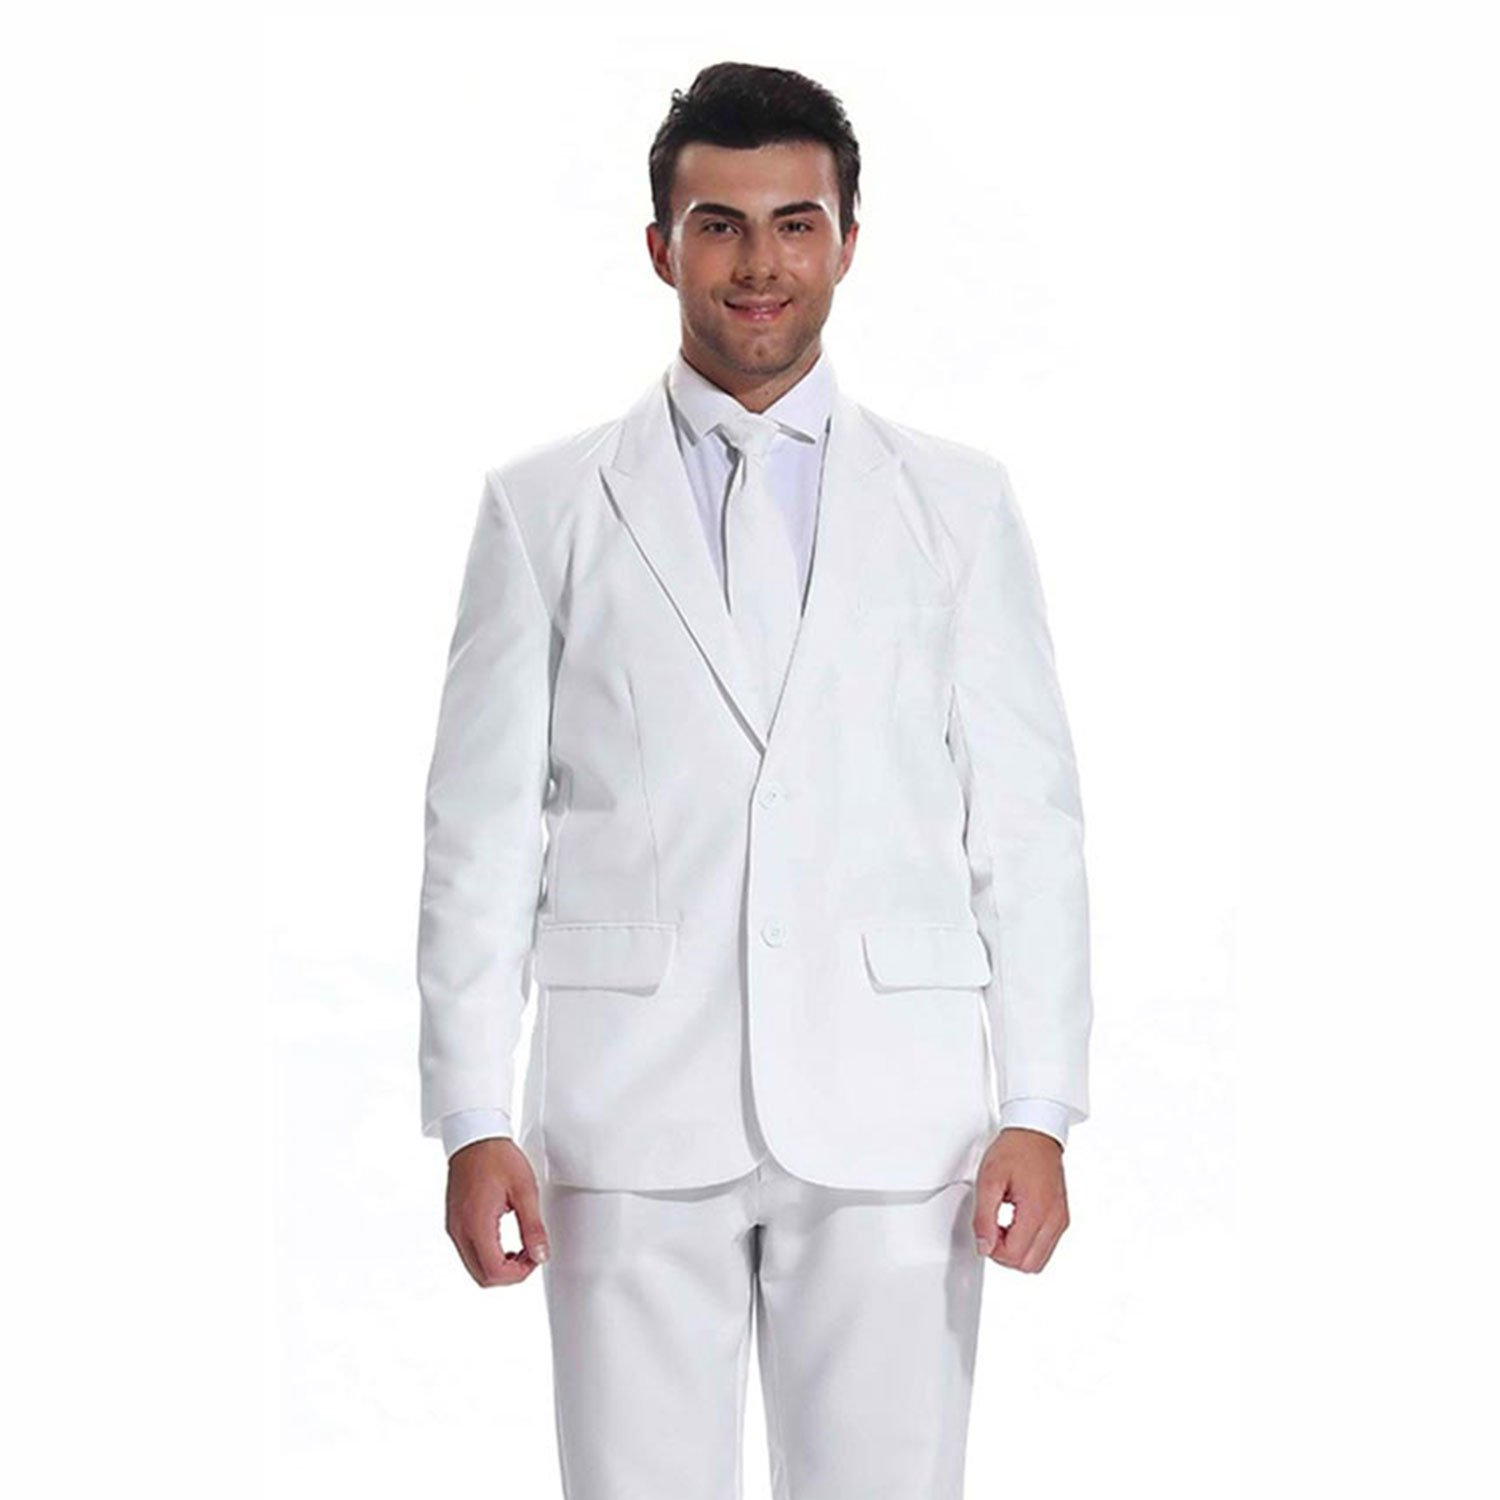 Christmas Party Suit Men.Solid White Color Men S Christmas Suits